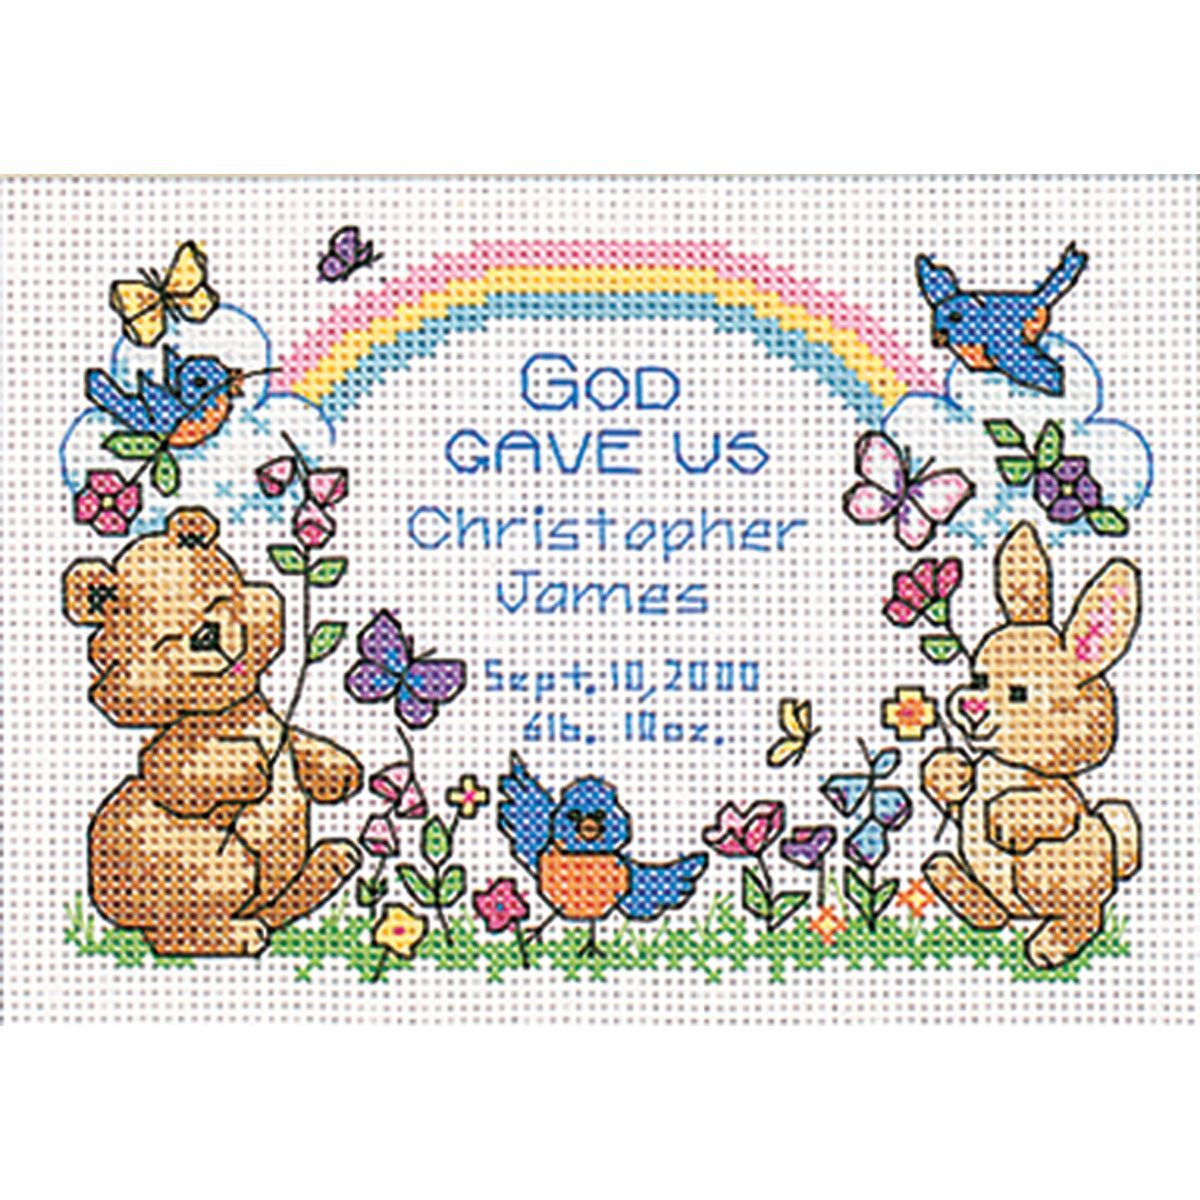 God's Babies Birth Record Cross Stitch Kit By Dimensions